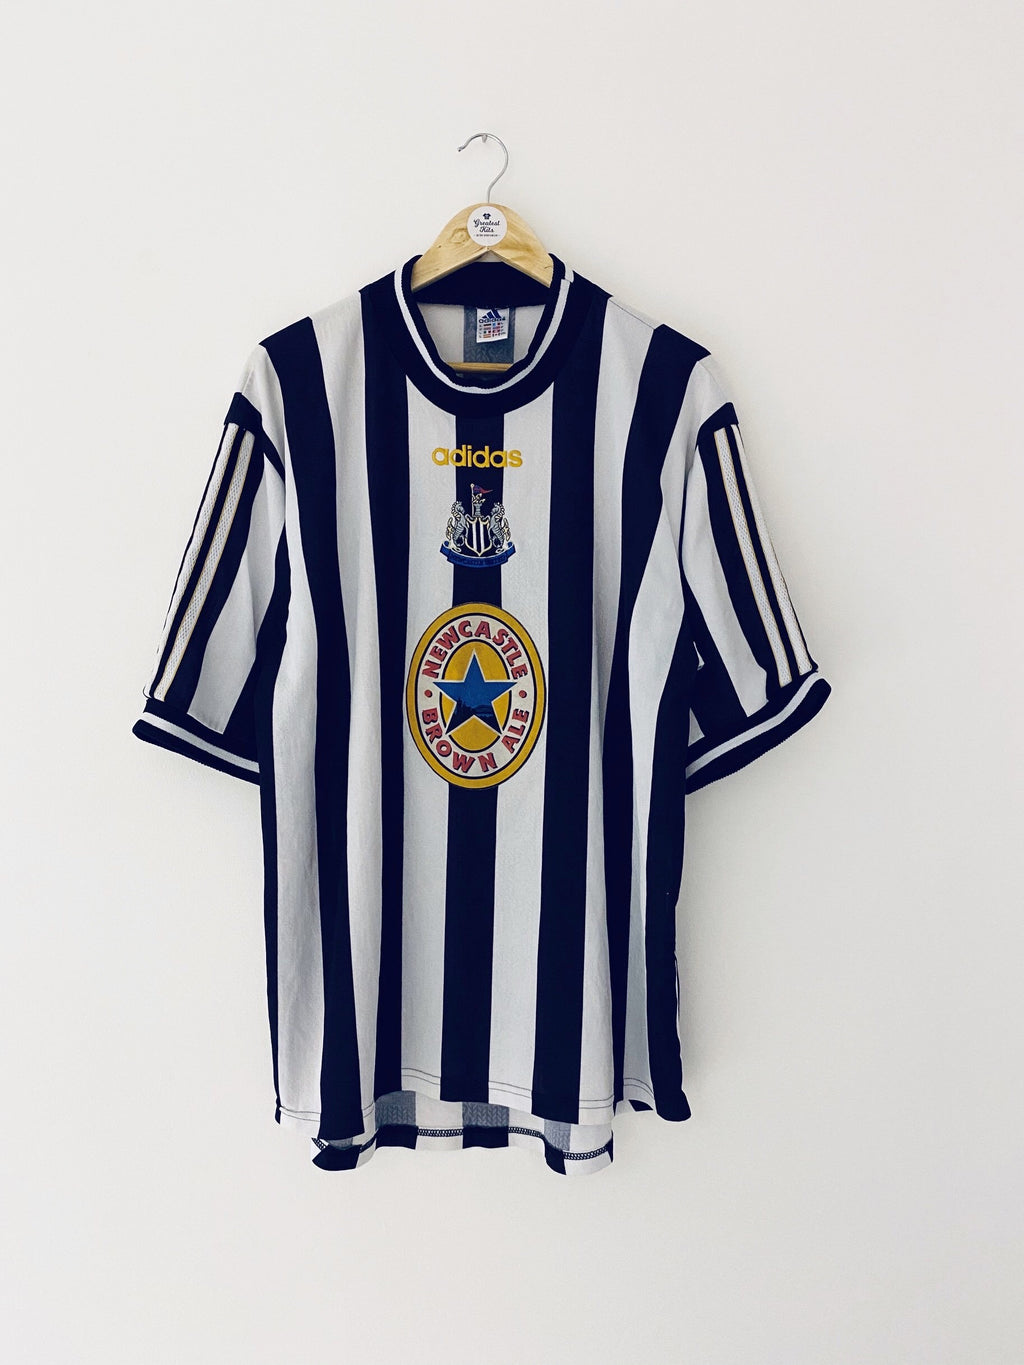 1997/99 Newcastle Home Shirt (XL) 8.5/10